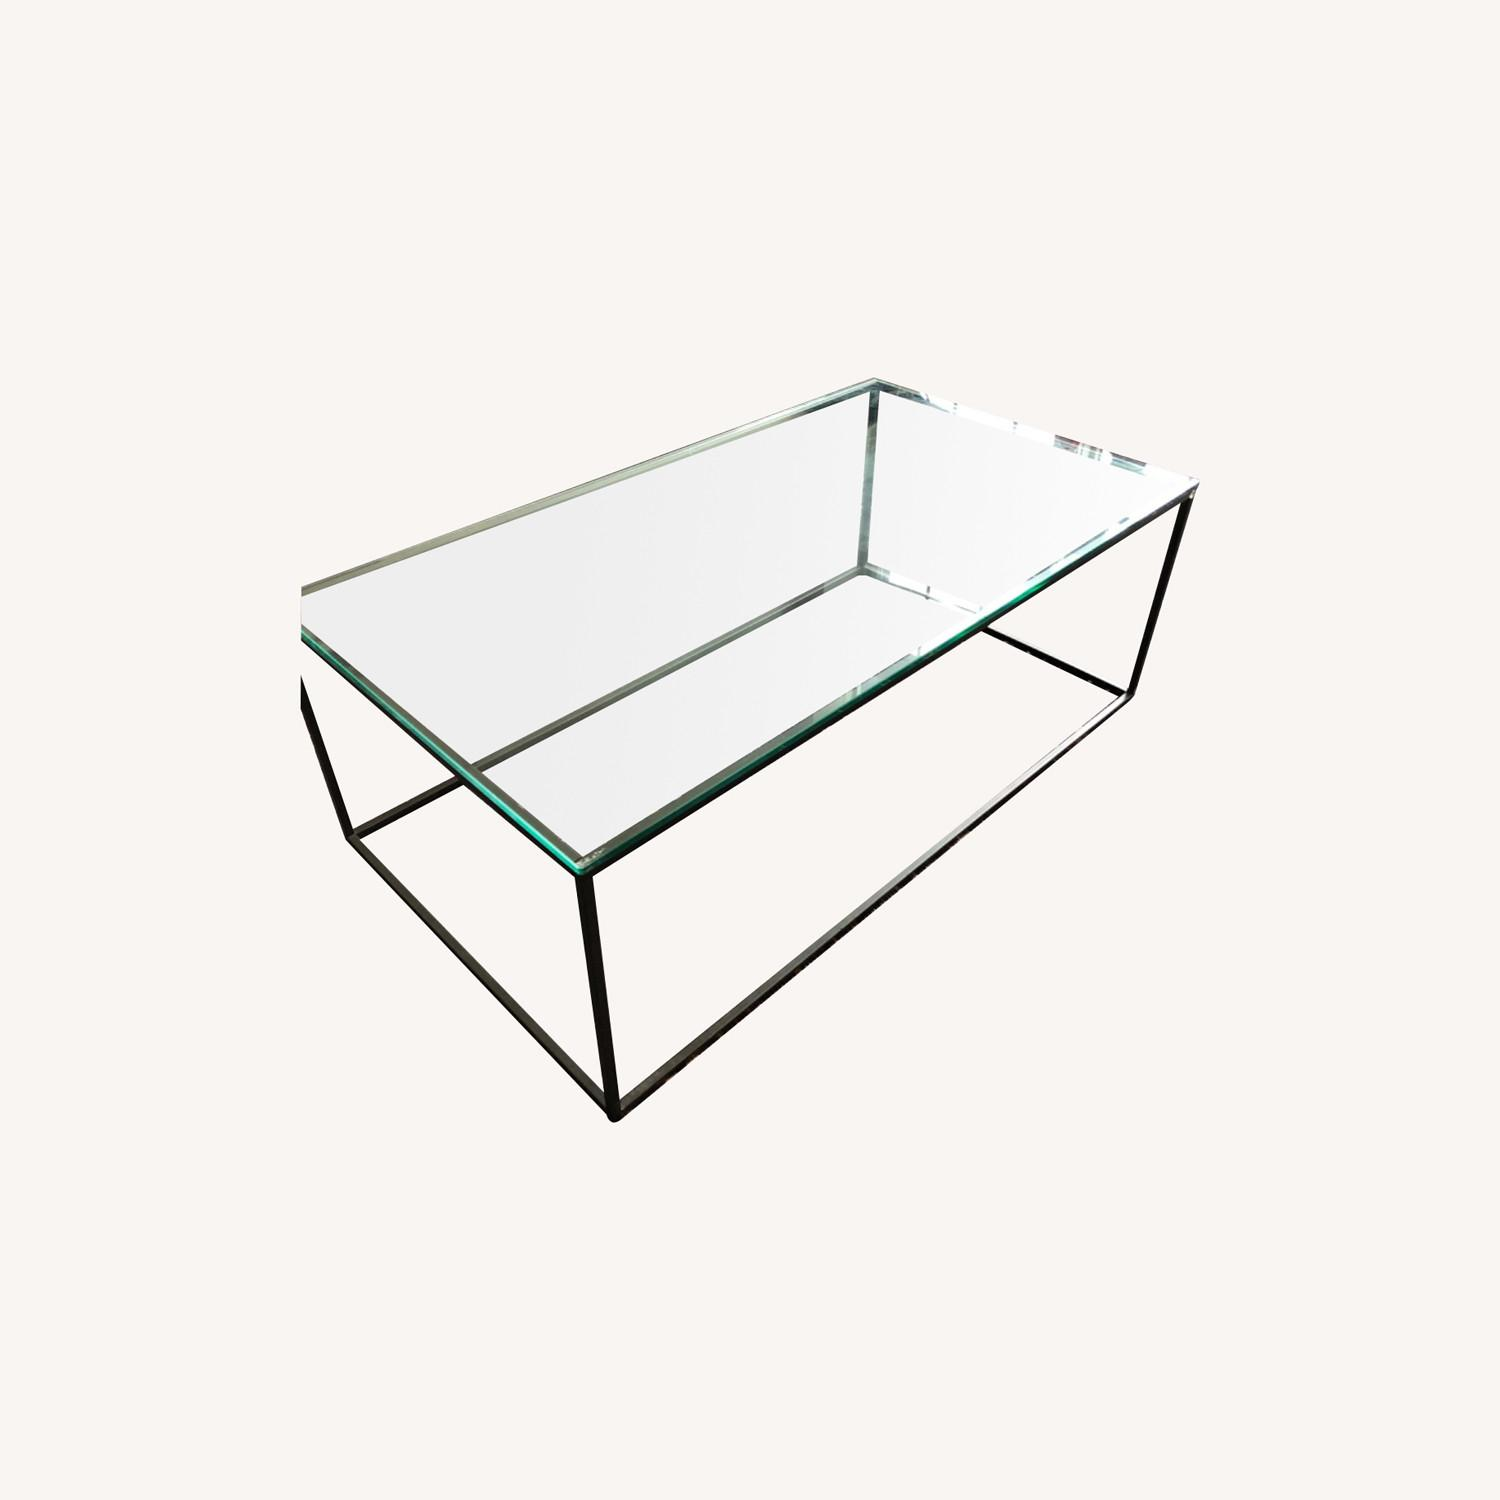 West Elm Streamline Coffee Table - Glass/Metal - image-0